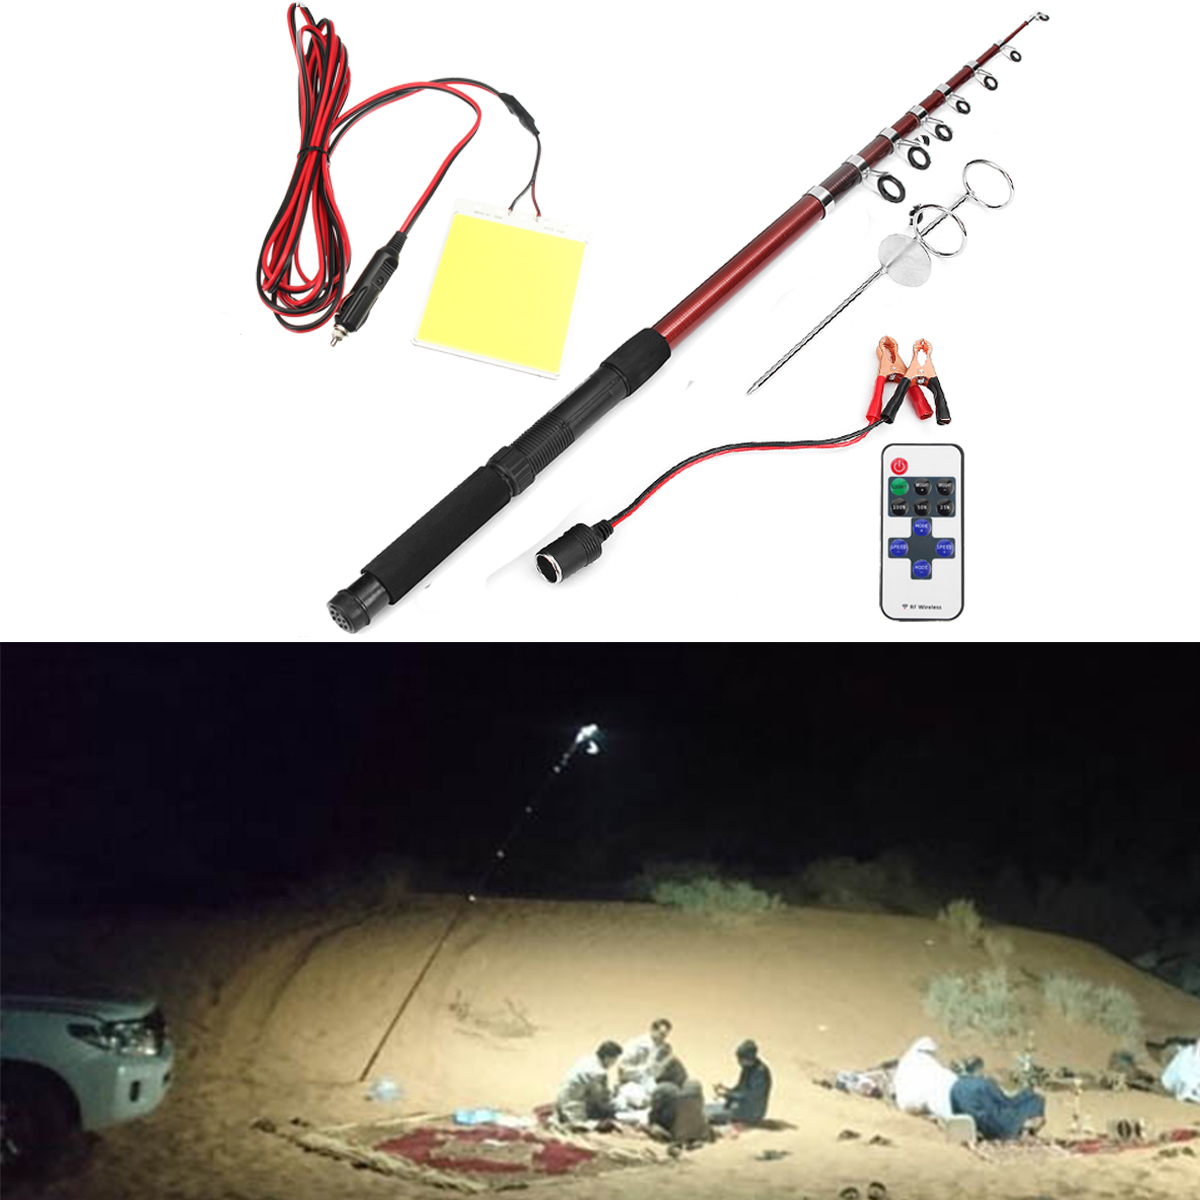 12V 200W Telescopic Fishing Lamp Car Rod Light LED Camp